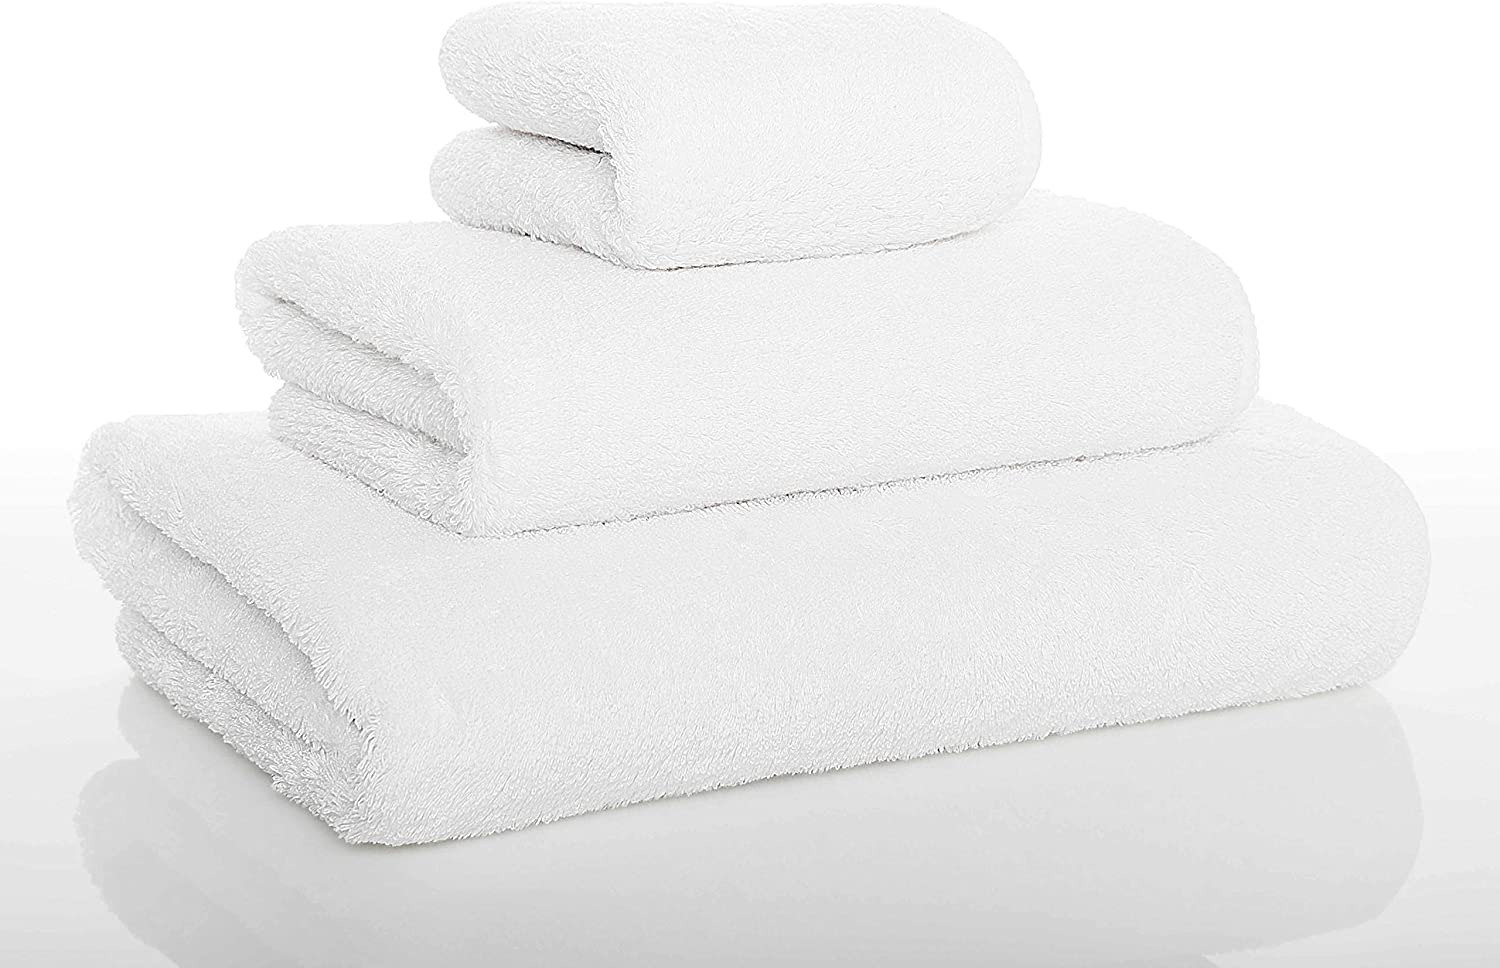 Amazon Com Graccioza Long Double Loop Bath Towel 28 X 55 White Made In Portugal 700 Gsm 100 Egyptian Cotton Home Kitchen